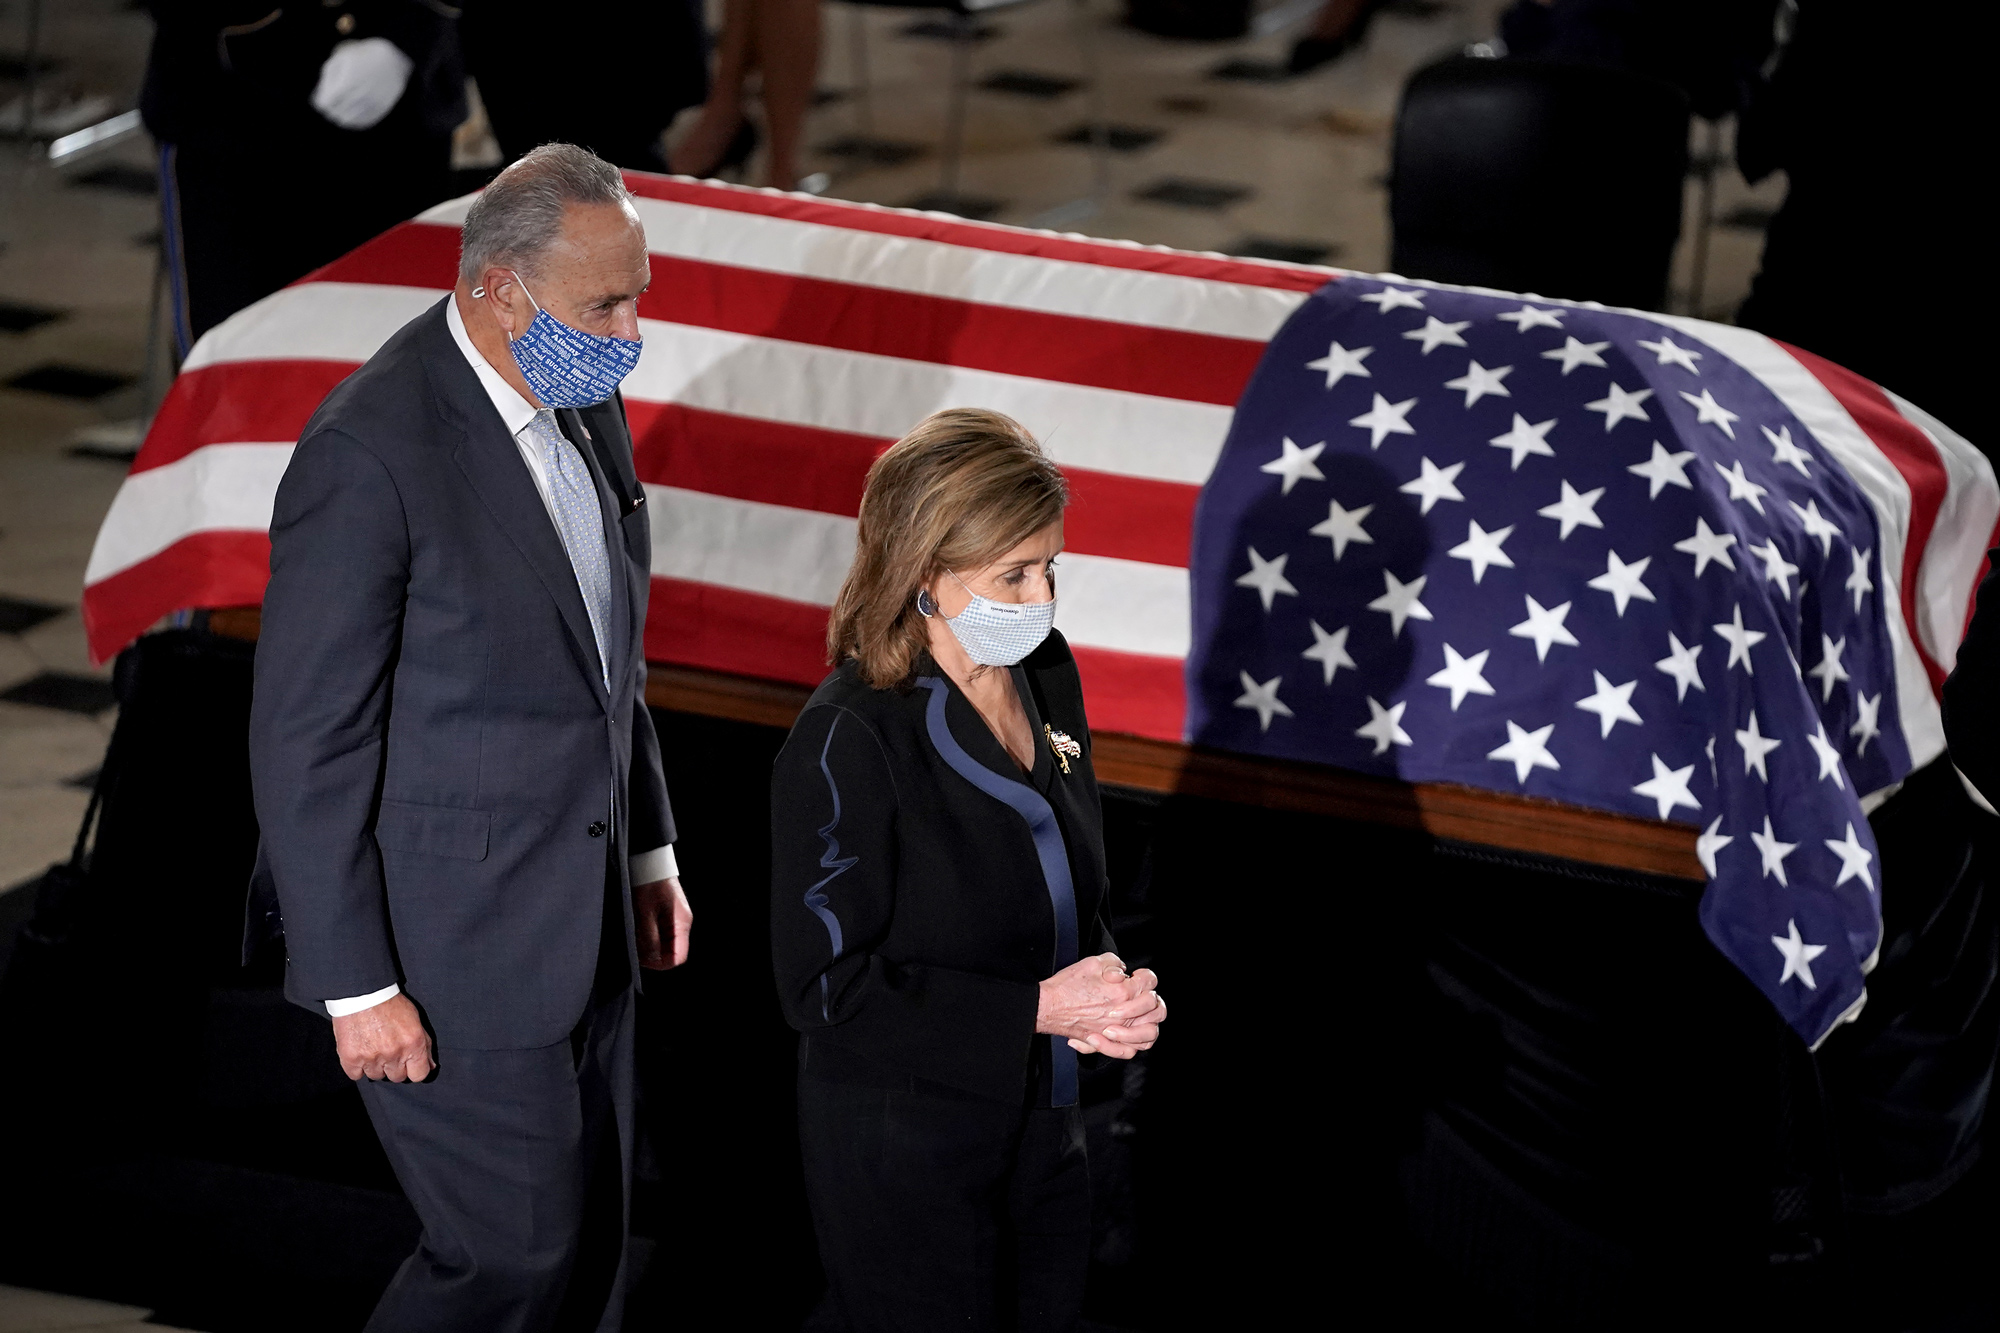 Speaker Nancy Pelosi and Senate Minority Leader Charles Schumer pay their respects to the late Associate Justice Ruth Bader Ginsburg as her casket lies in state during a memorial service in her honor in the Statuary Hall of the US Capitol in Washington, DC, on September 25.